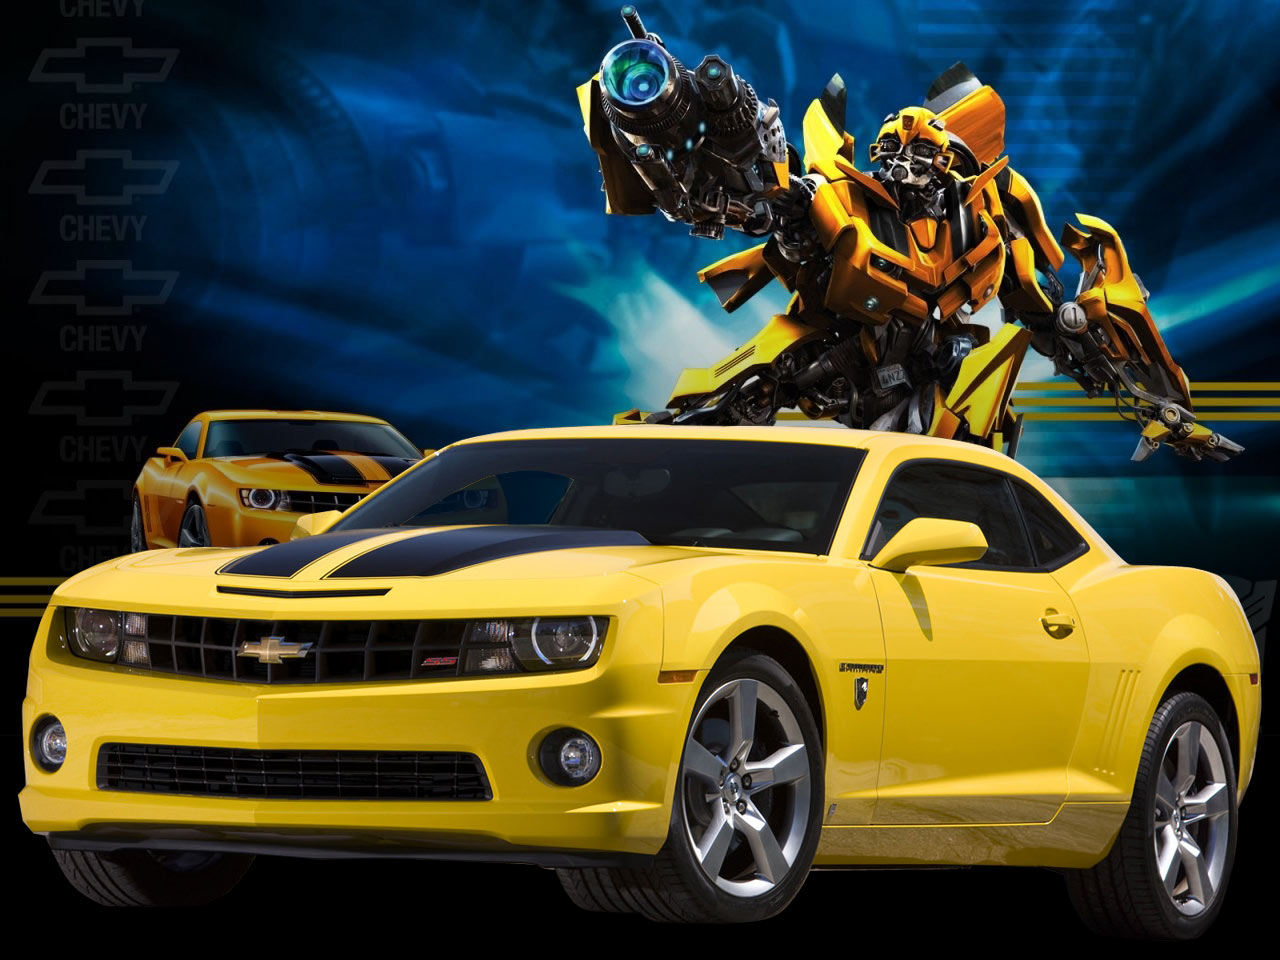 Chevy Camaro Transformers Wallpaper 6591 Hd Wallpapers in Cars 1280x960